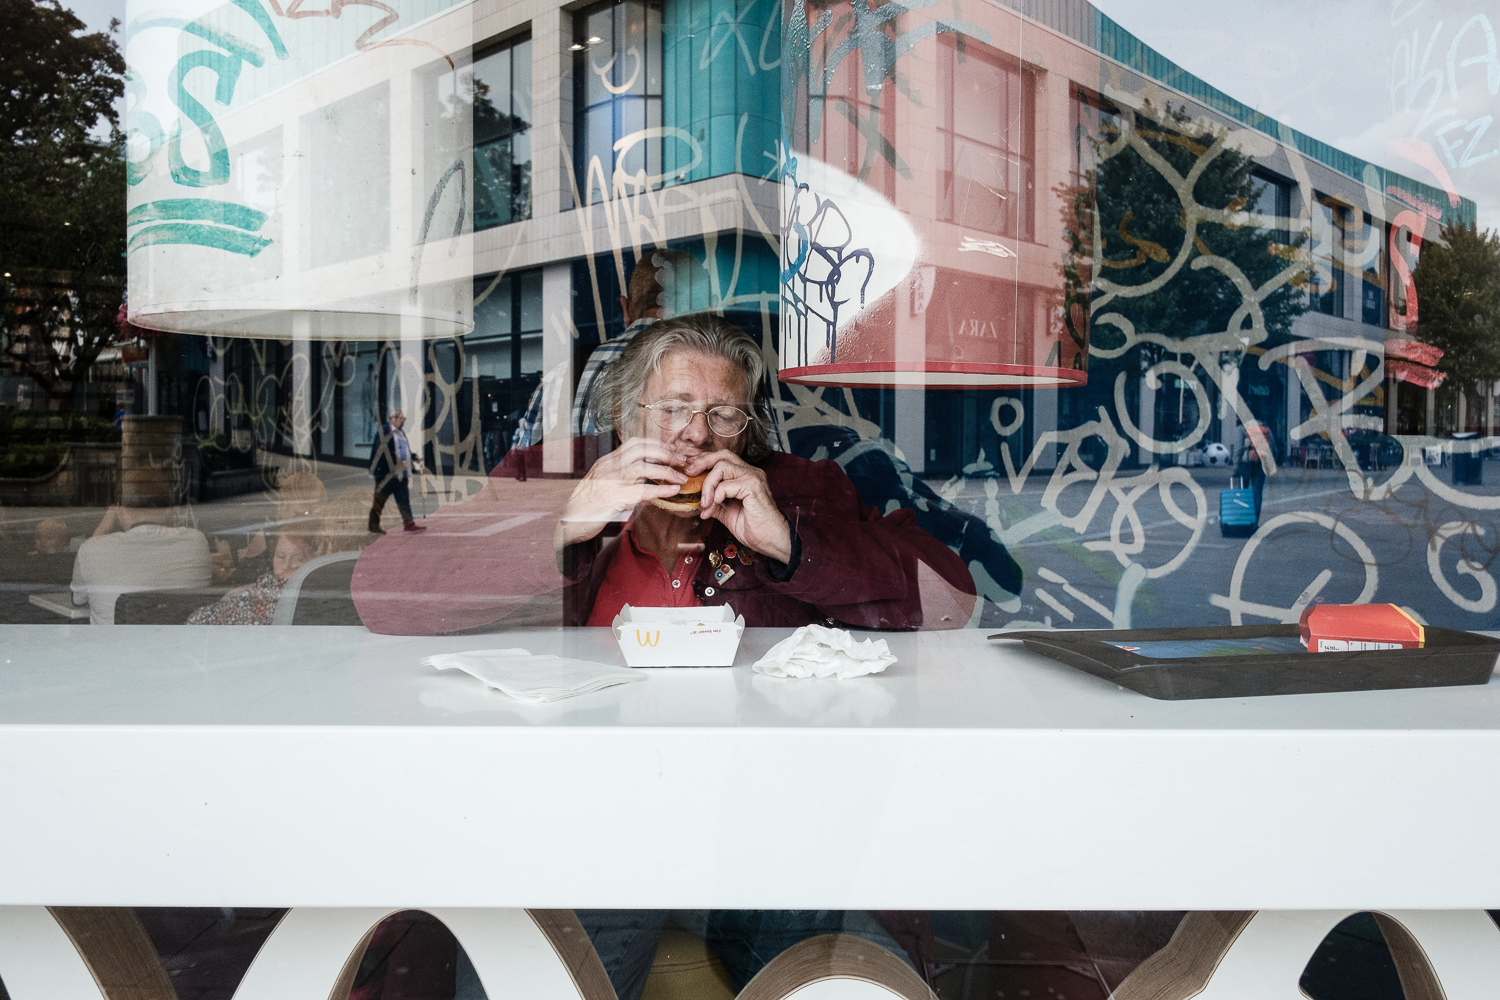 swansea-window-mcdonalds-lady.jpg